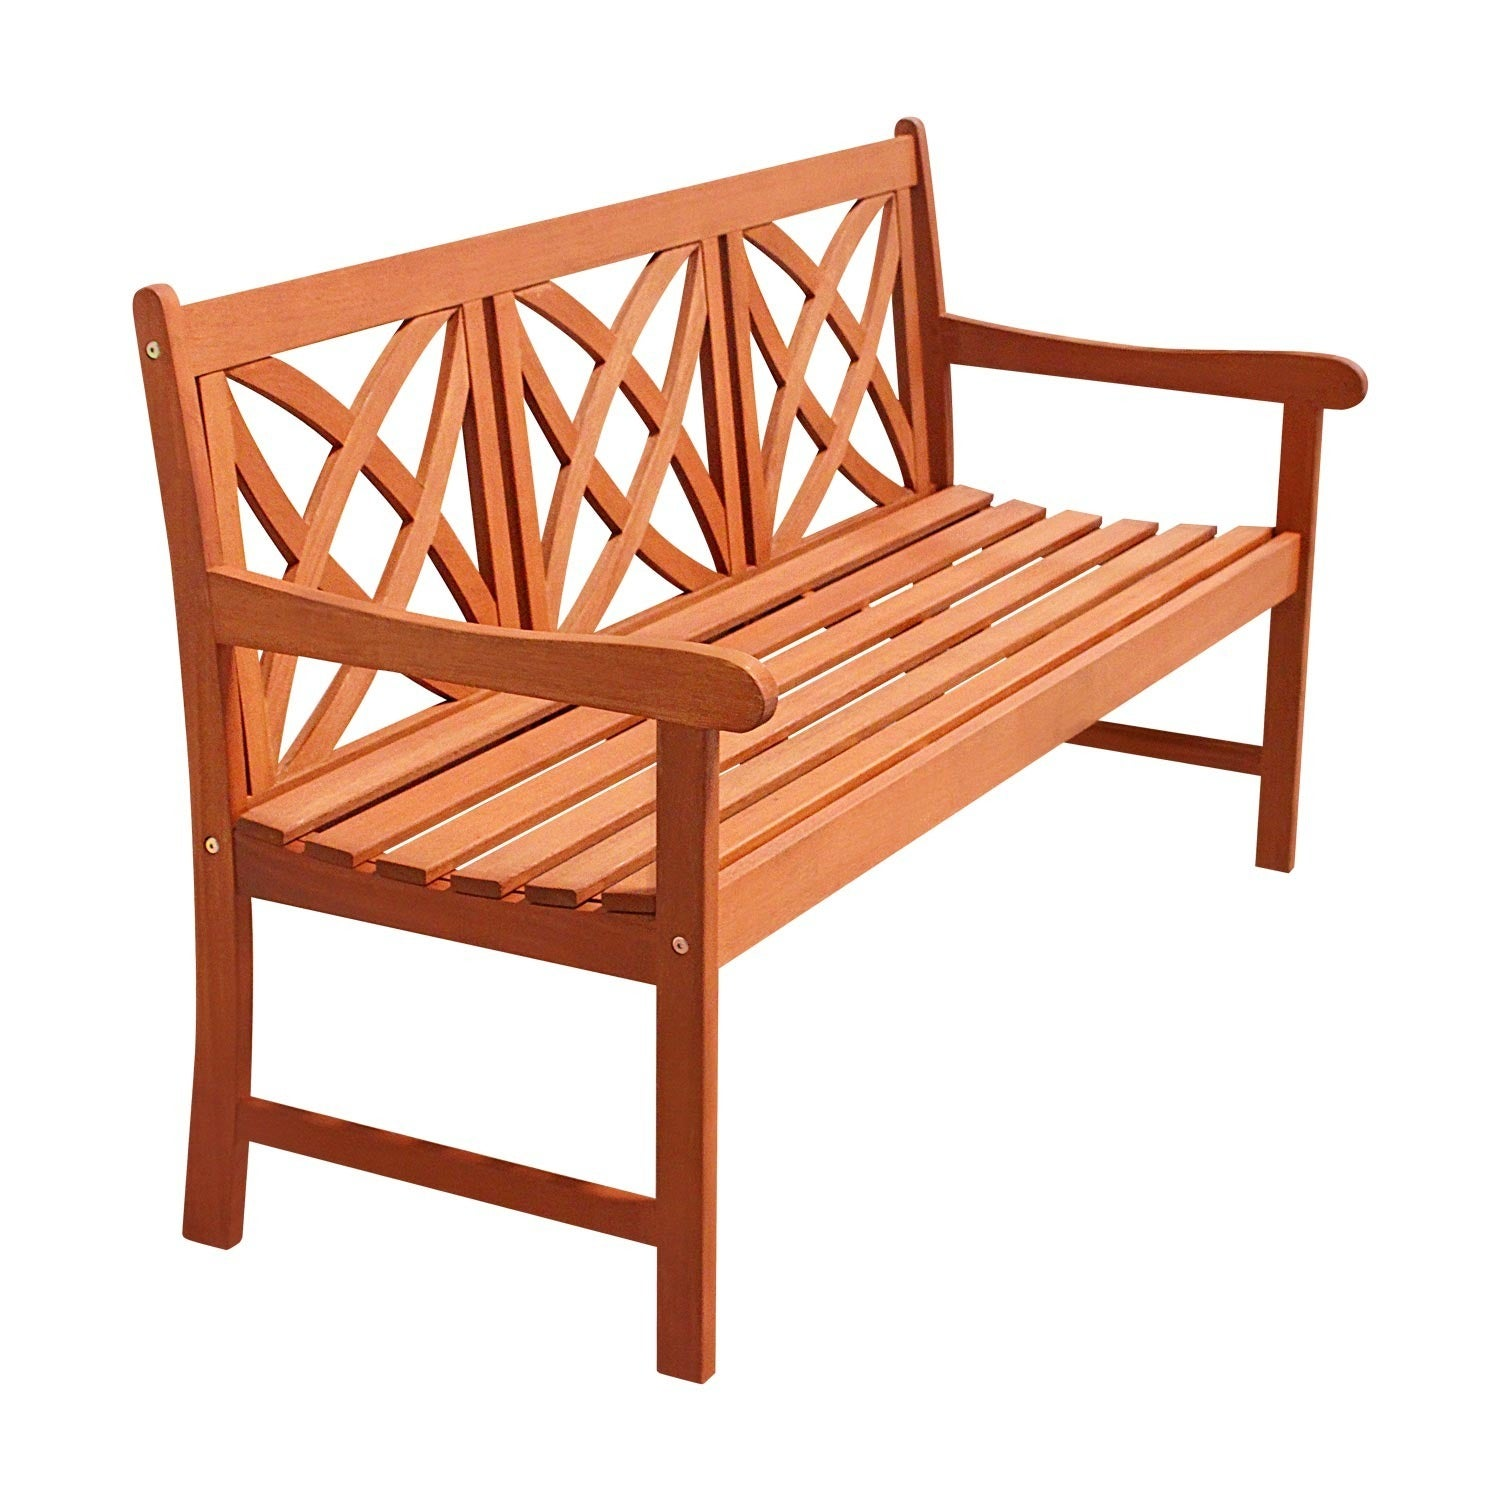 Shop Eco Firendly 5 Foot Wood Garden Bench Free Shipping On Orders